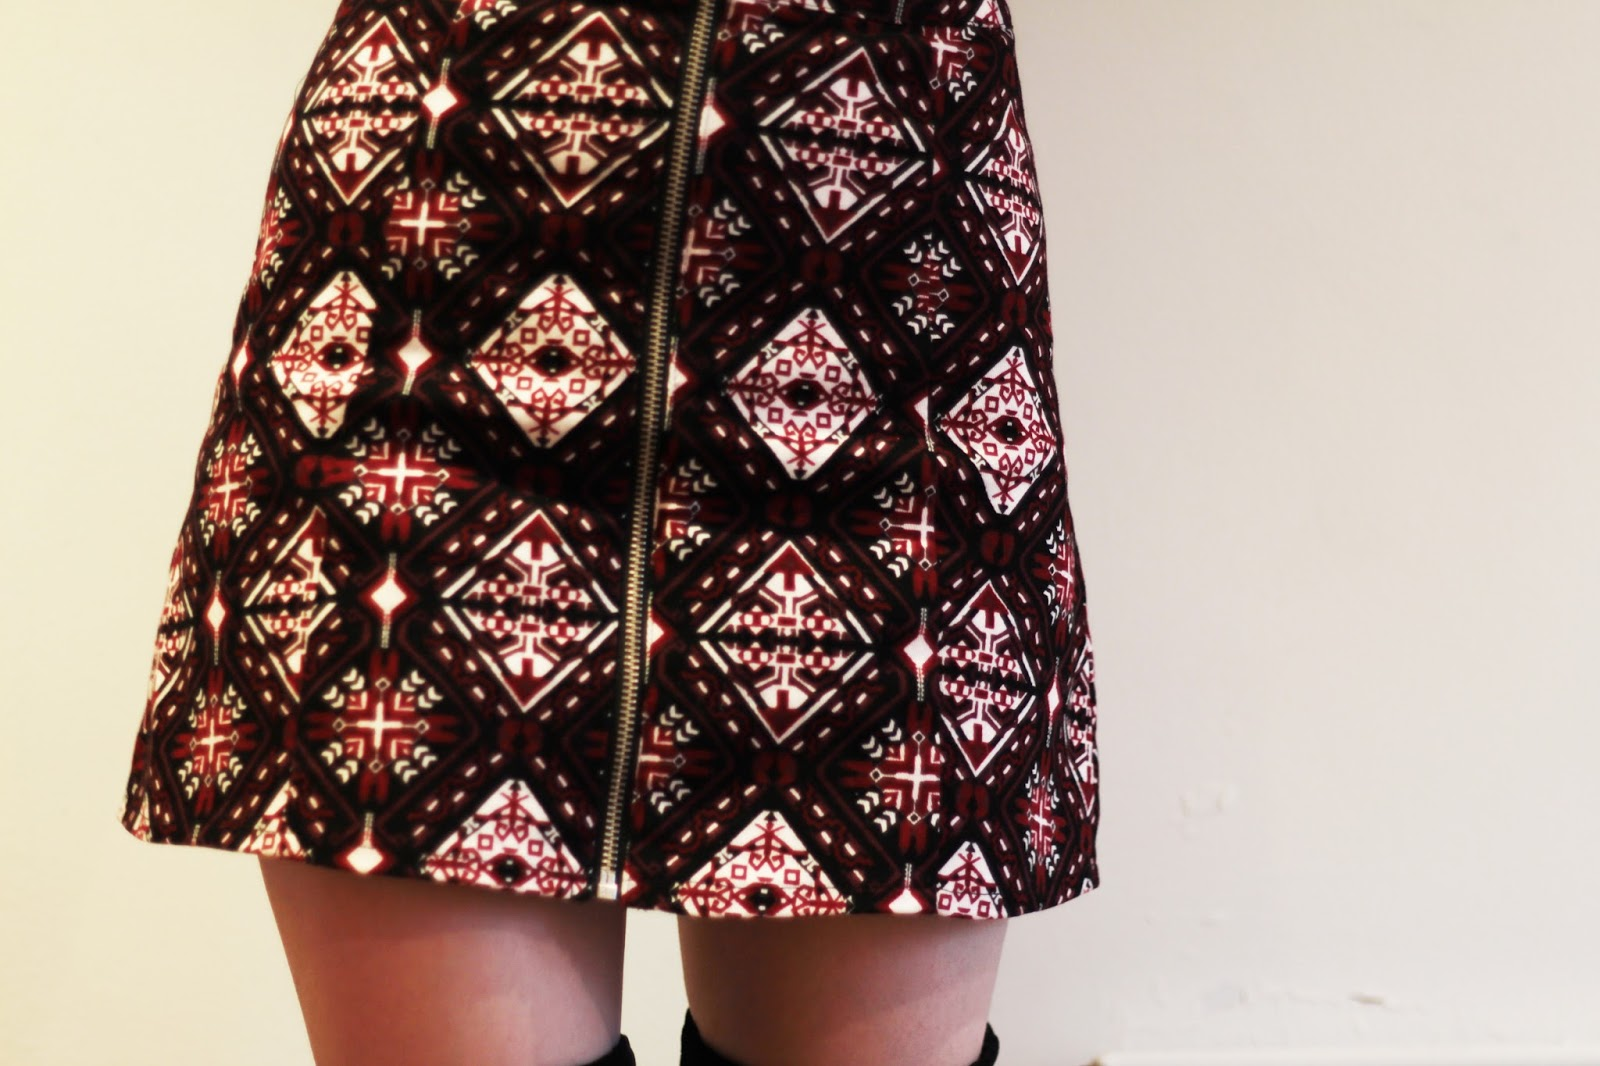 H&M zip front a line patterned skirt